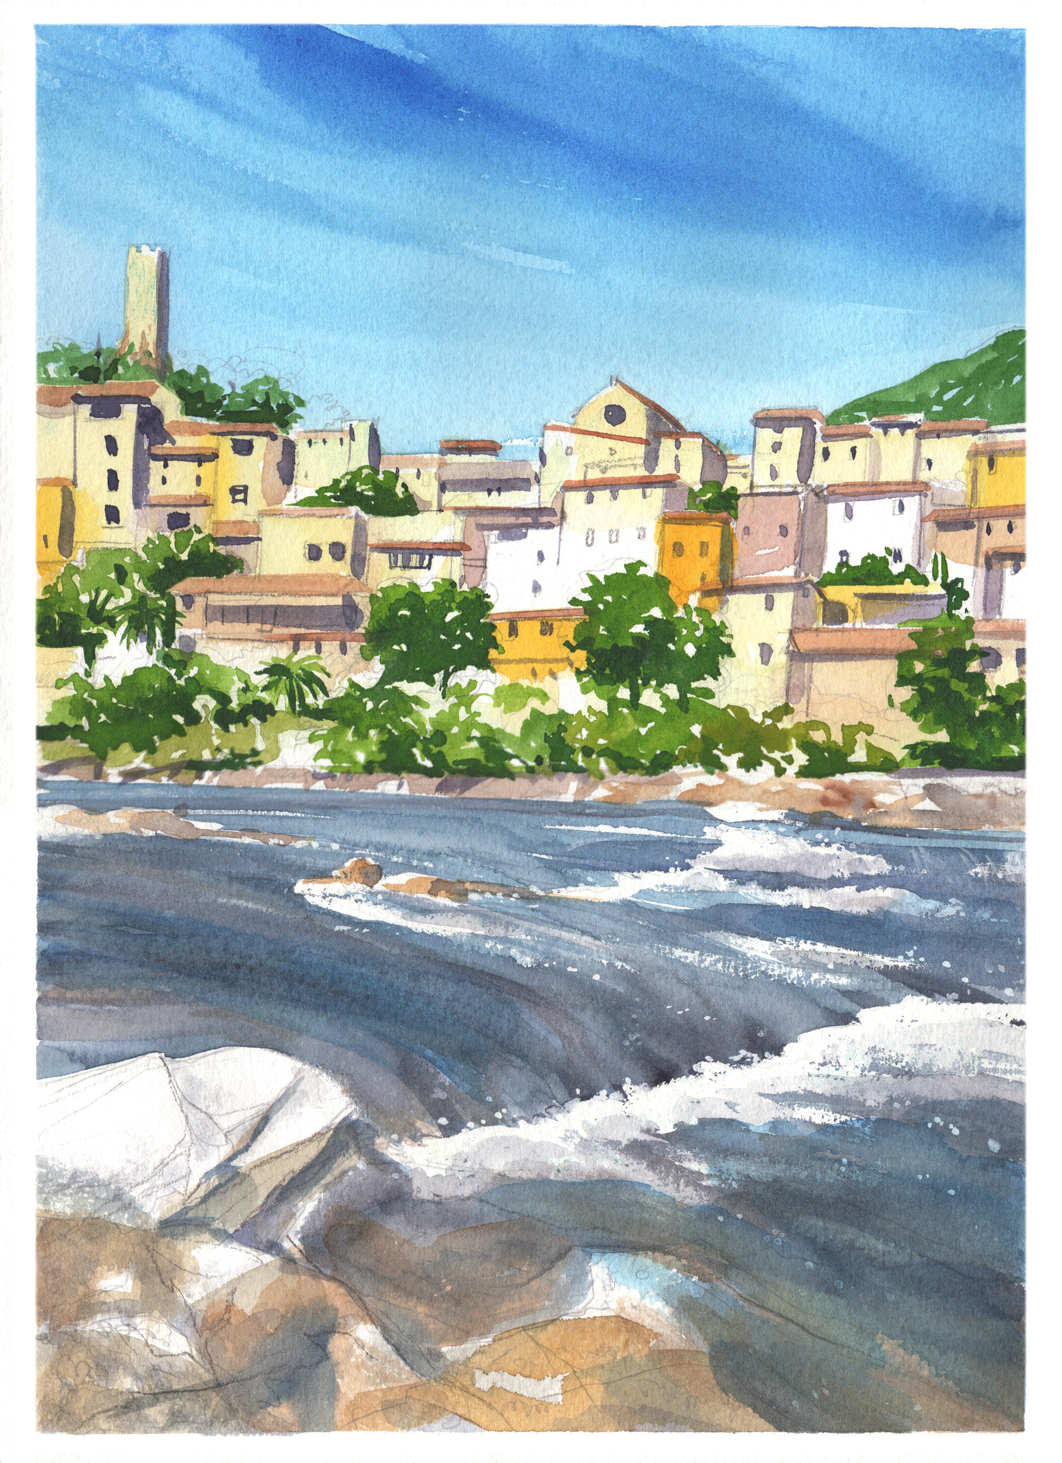 roquebrun simon roberts painting in france